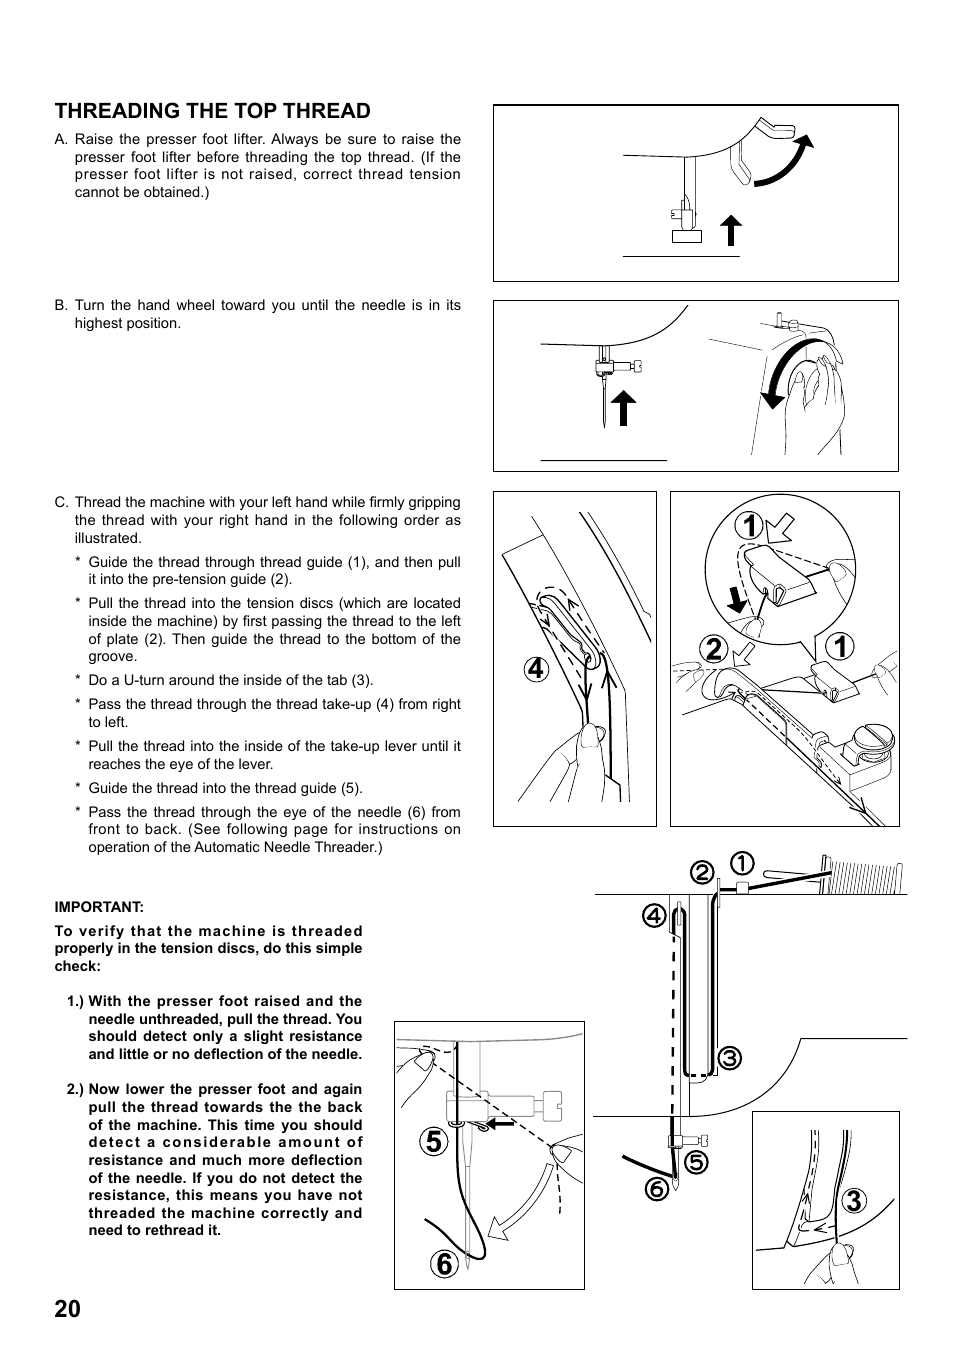 Threading The Top Thread Singer 7258 Stylist Instruction Manual This Is How Machine Should Be Threaded User Page 20 84